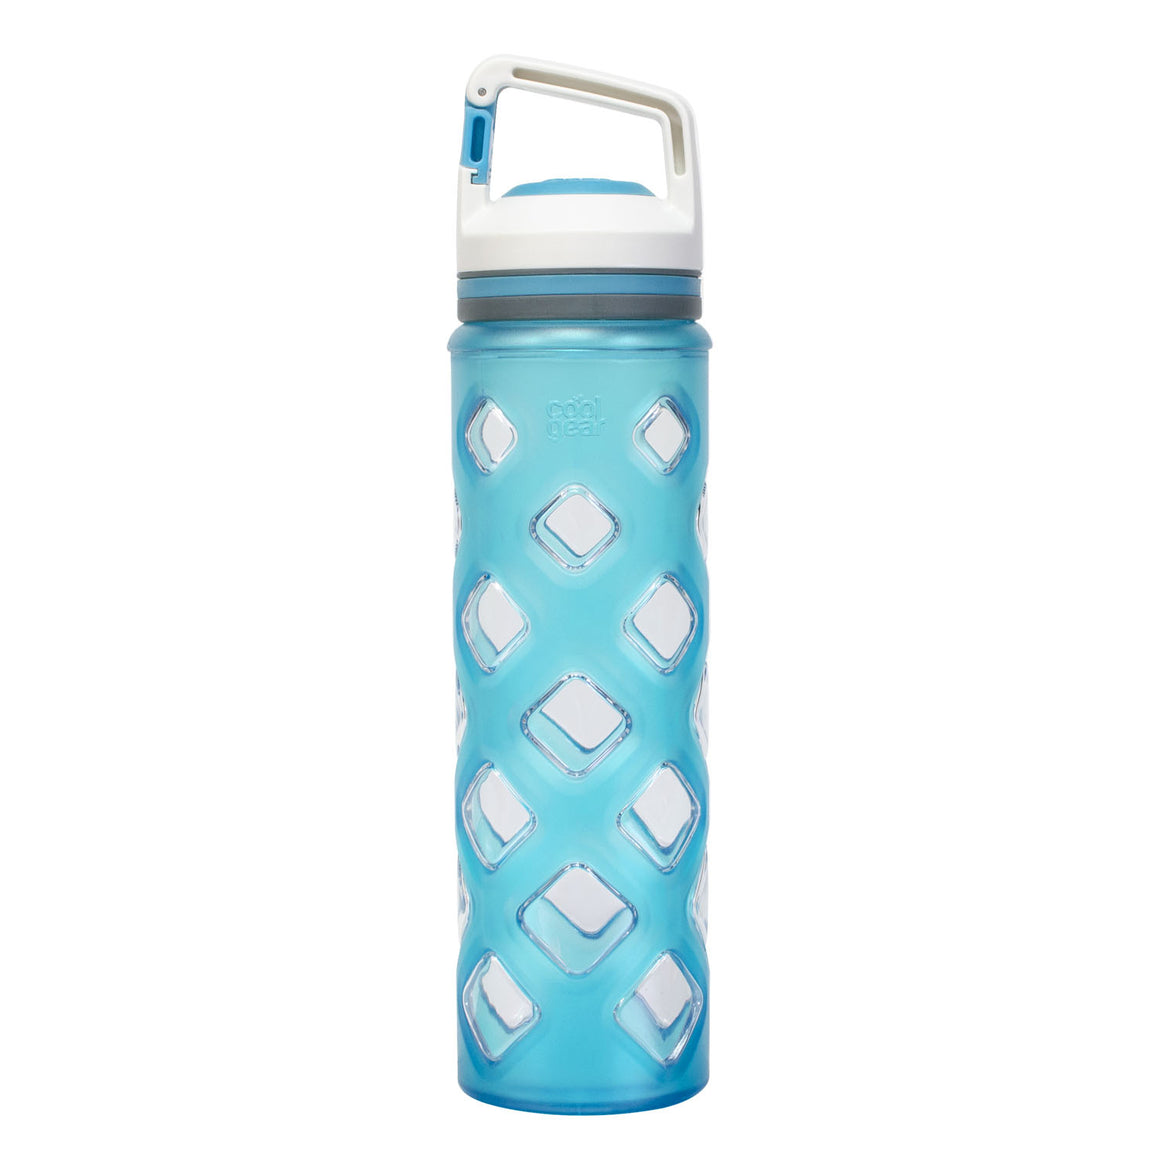 Smoke Block 22 Oz Water Bottle at Cool Gear Water Bottles